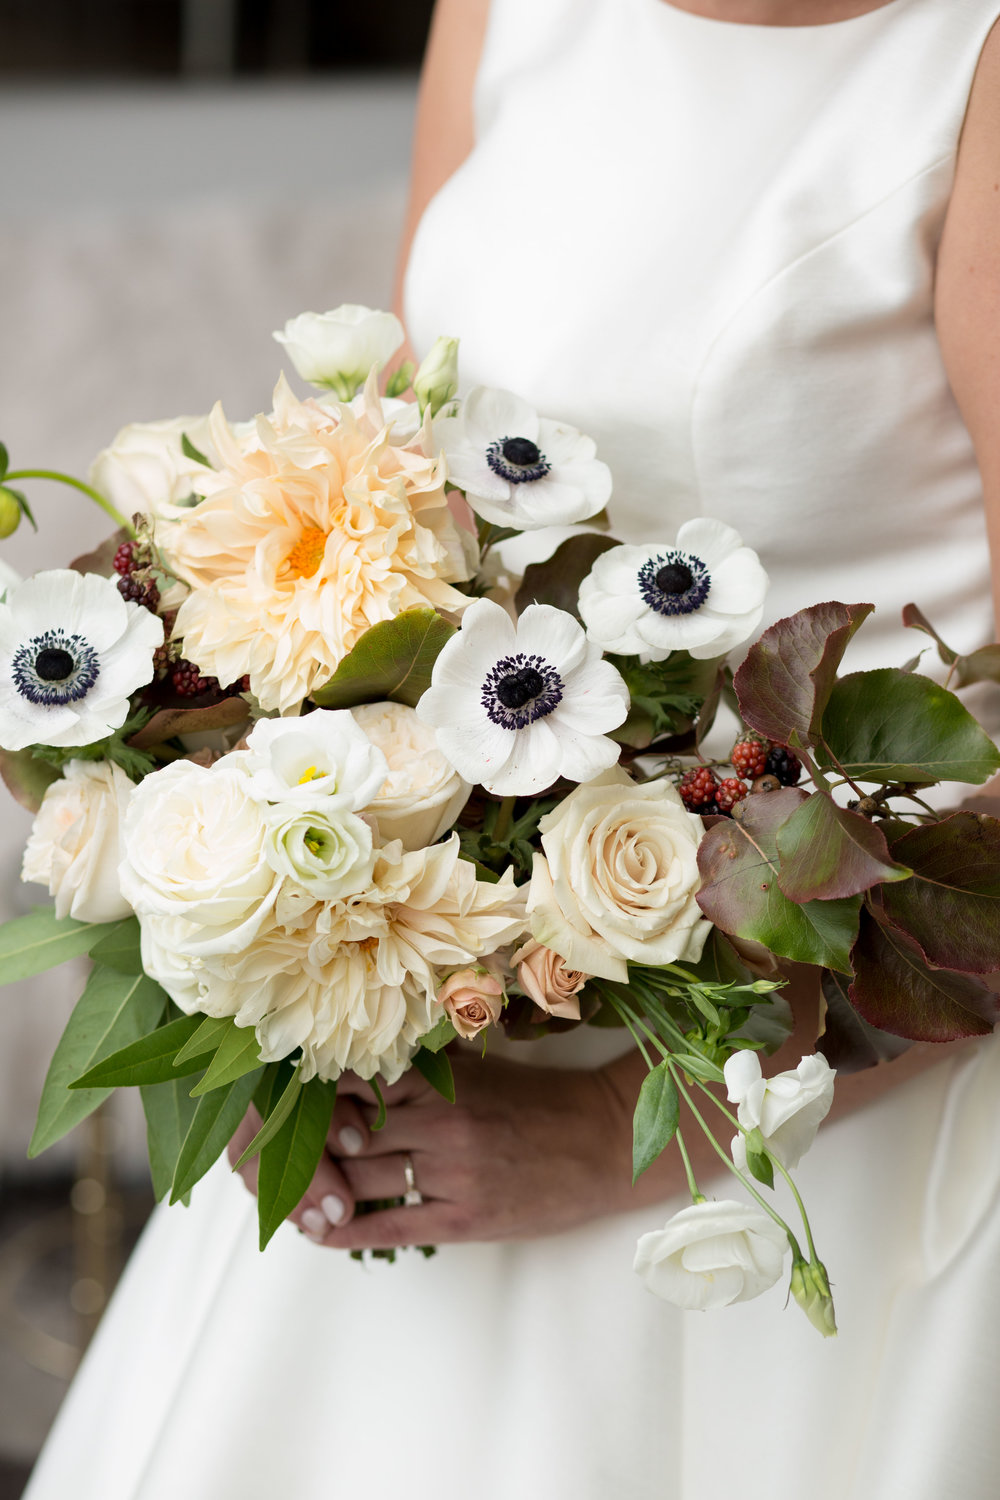 Floral by Fleur Inc, Photo by Natalie Probst, Anemone Bouquet, Chicago Wedding at Saddle & Cycle Club.